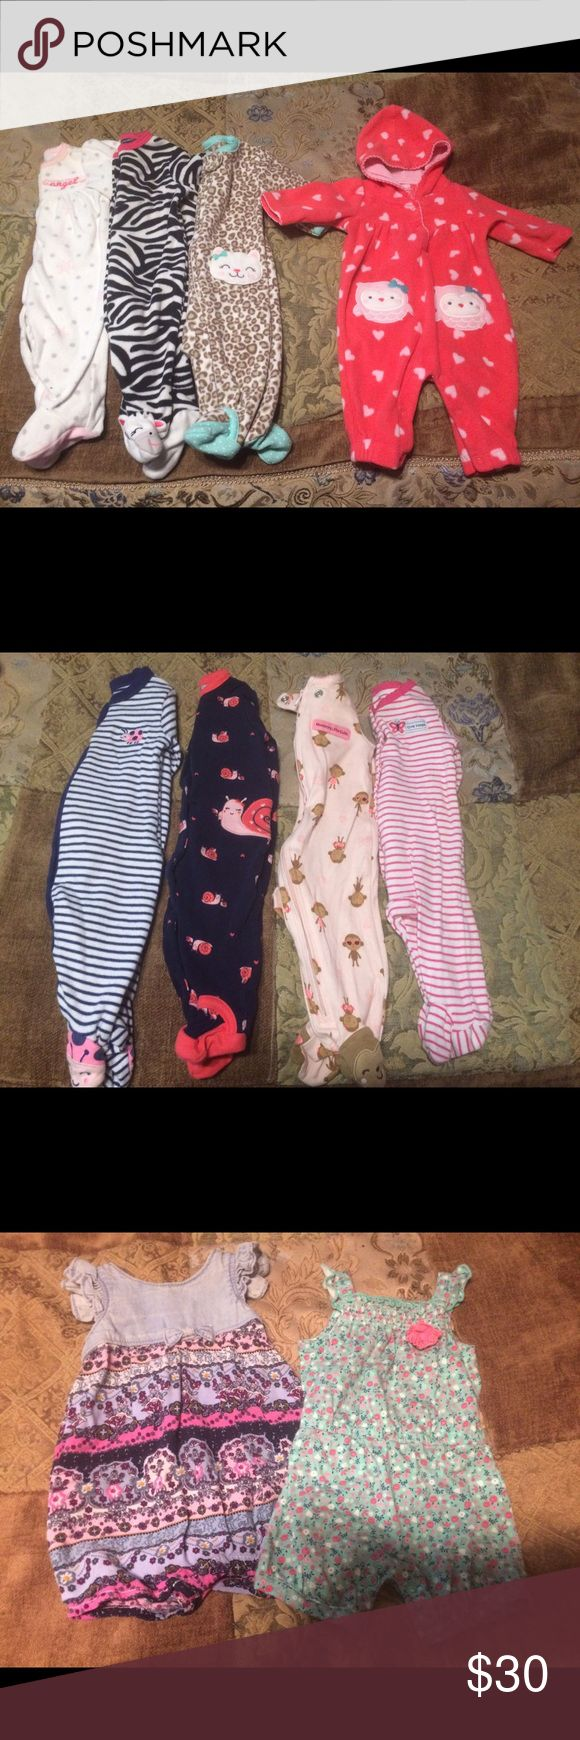 Newborn 0-3 month lot . More shown in pics! 4 fleece newborn sleepers, one has a good and no feet. 4 lightweight sleepers. 3 are button ups, one is zipper. 3 long sleeve newborn giraffe onesies. Brand new with tags. (Couldn't upload anymore pics if interested I'll upload) 2 0-3 month rompers 1 0-3 month purple tank top.  1 0-3 month sundress with diaper cover and reversible sun hat Sell as whole lot for $30 or 5$ per outfit/set One Pieces